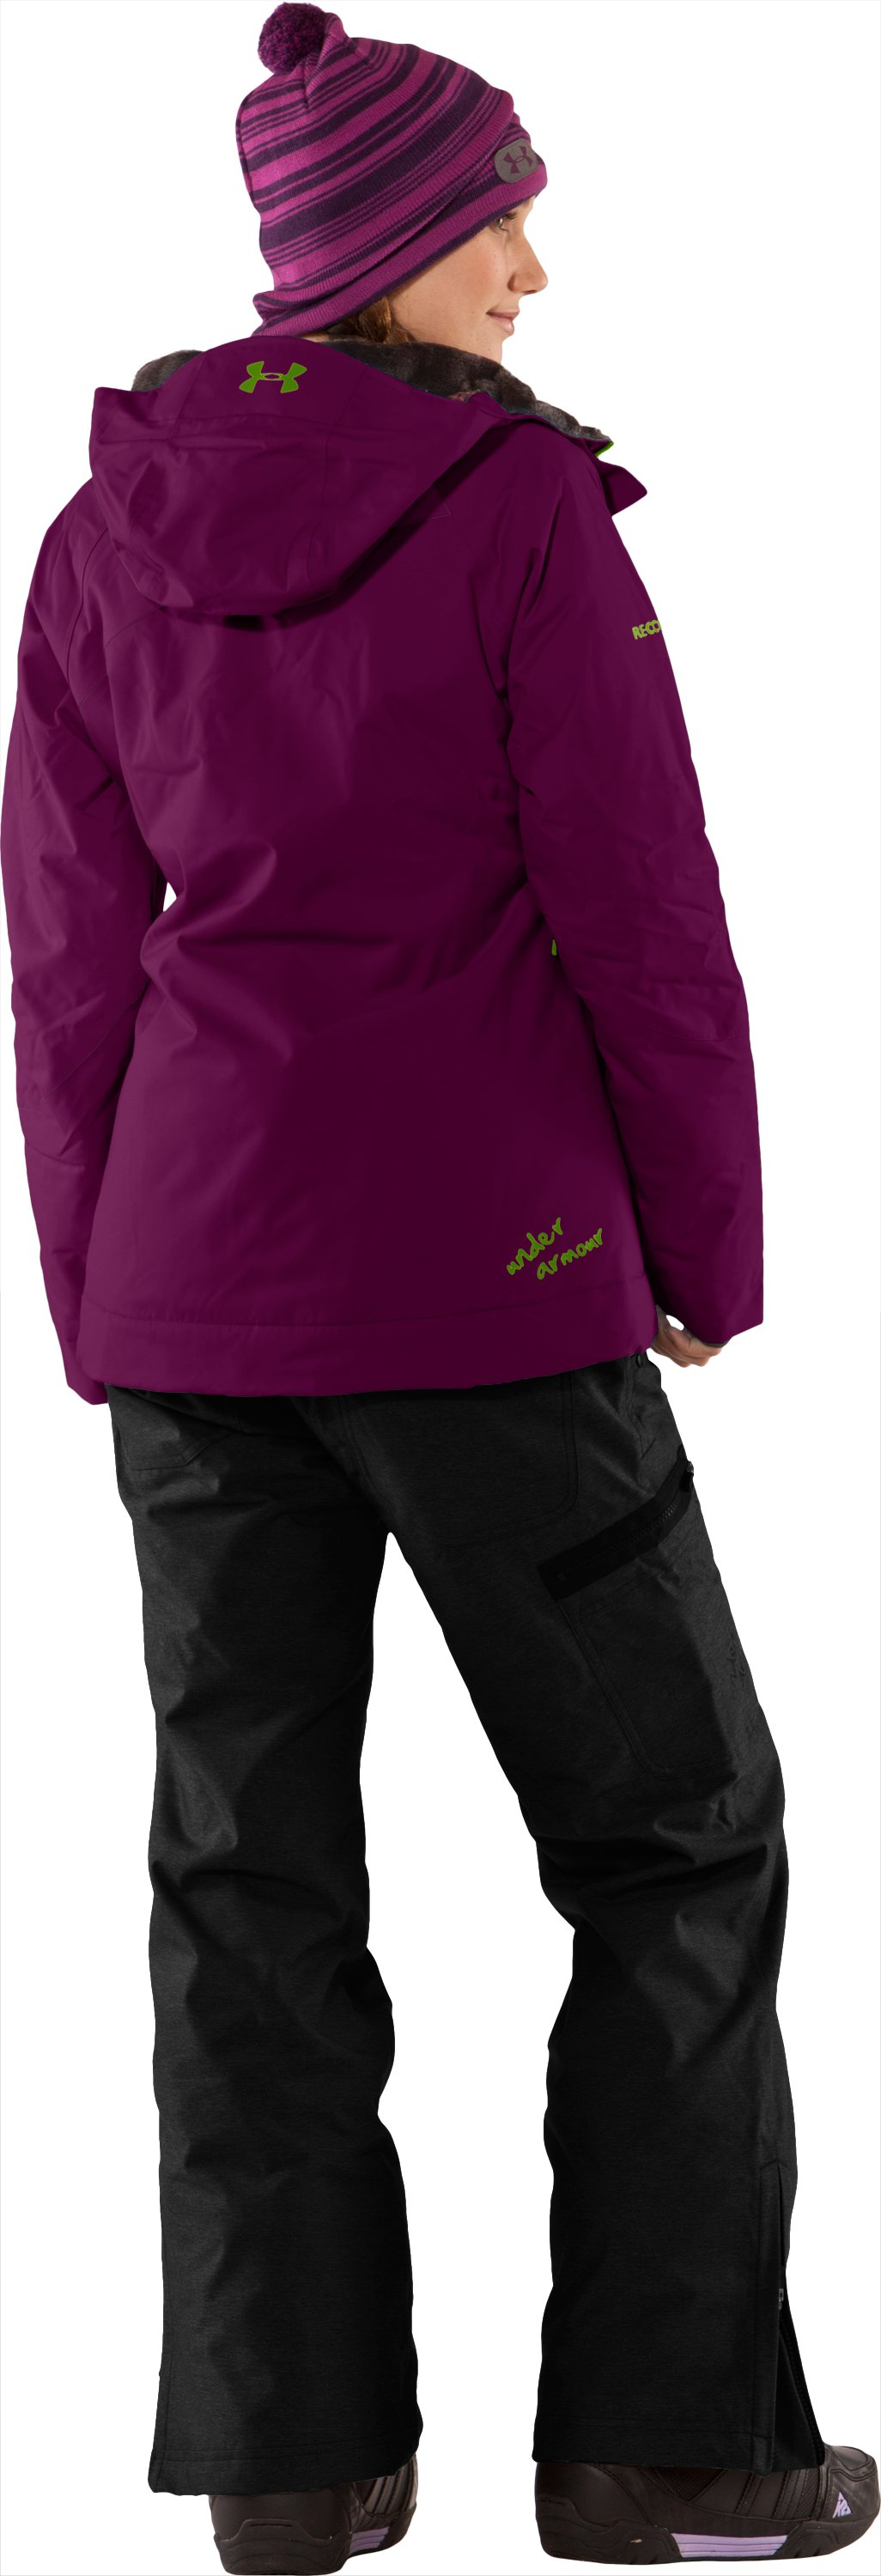 Women's Blar Waterproof Ski Jacket, Aubergine, Back